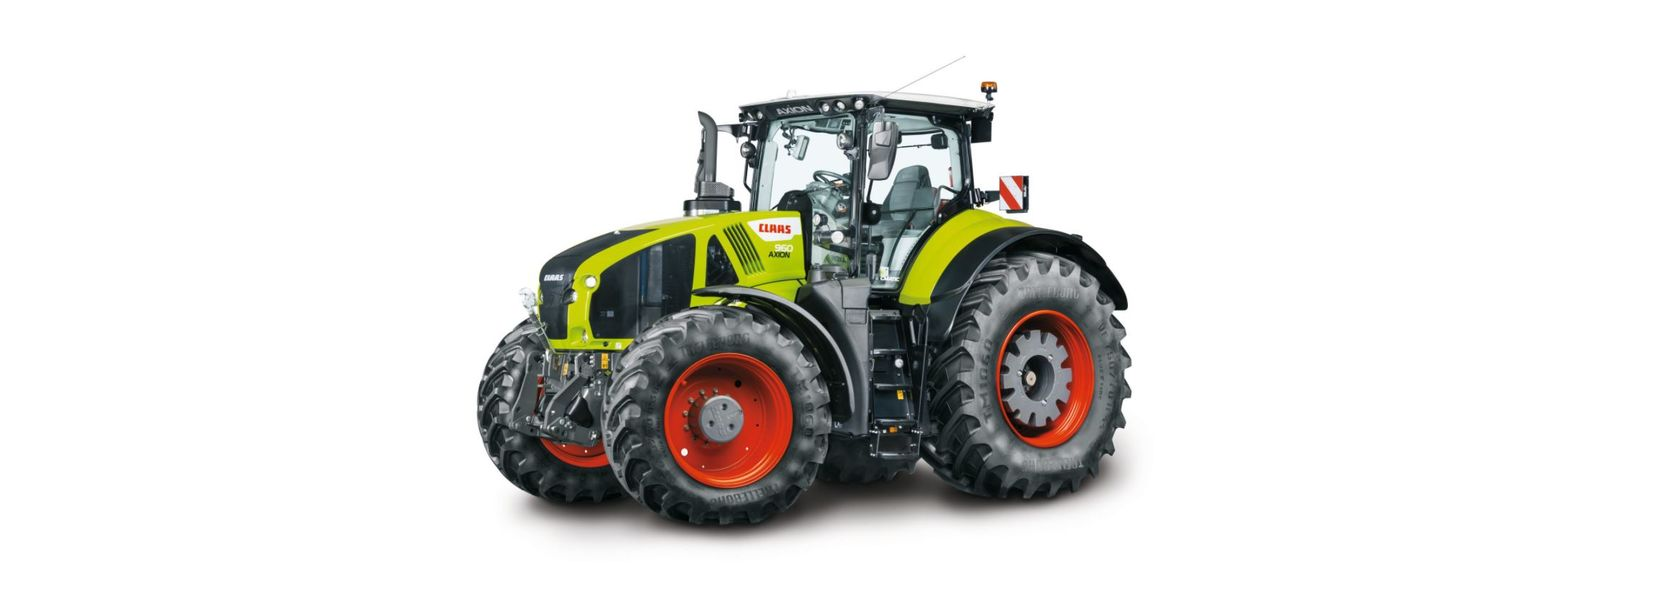 New Axion range from CLAAS includes technology upgrades